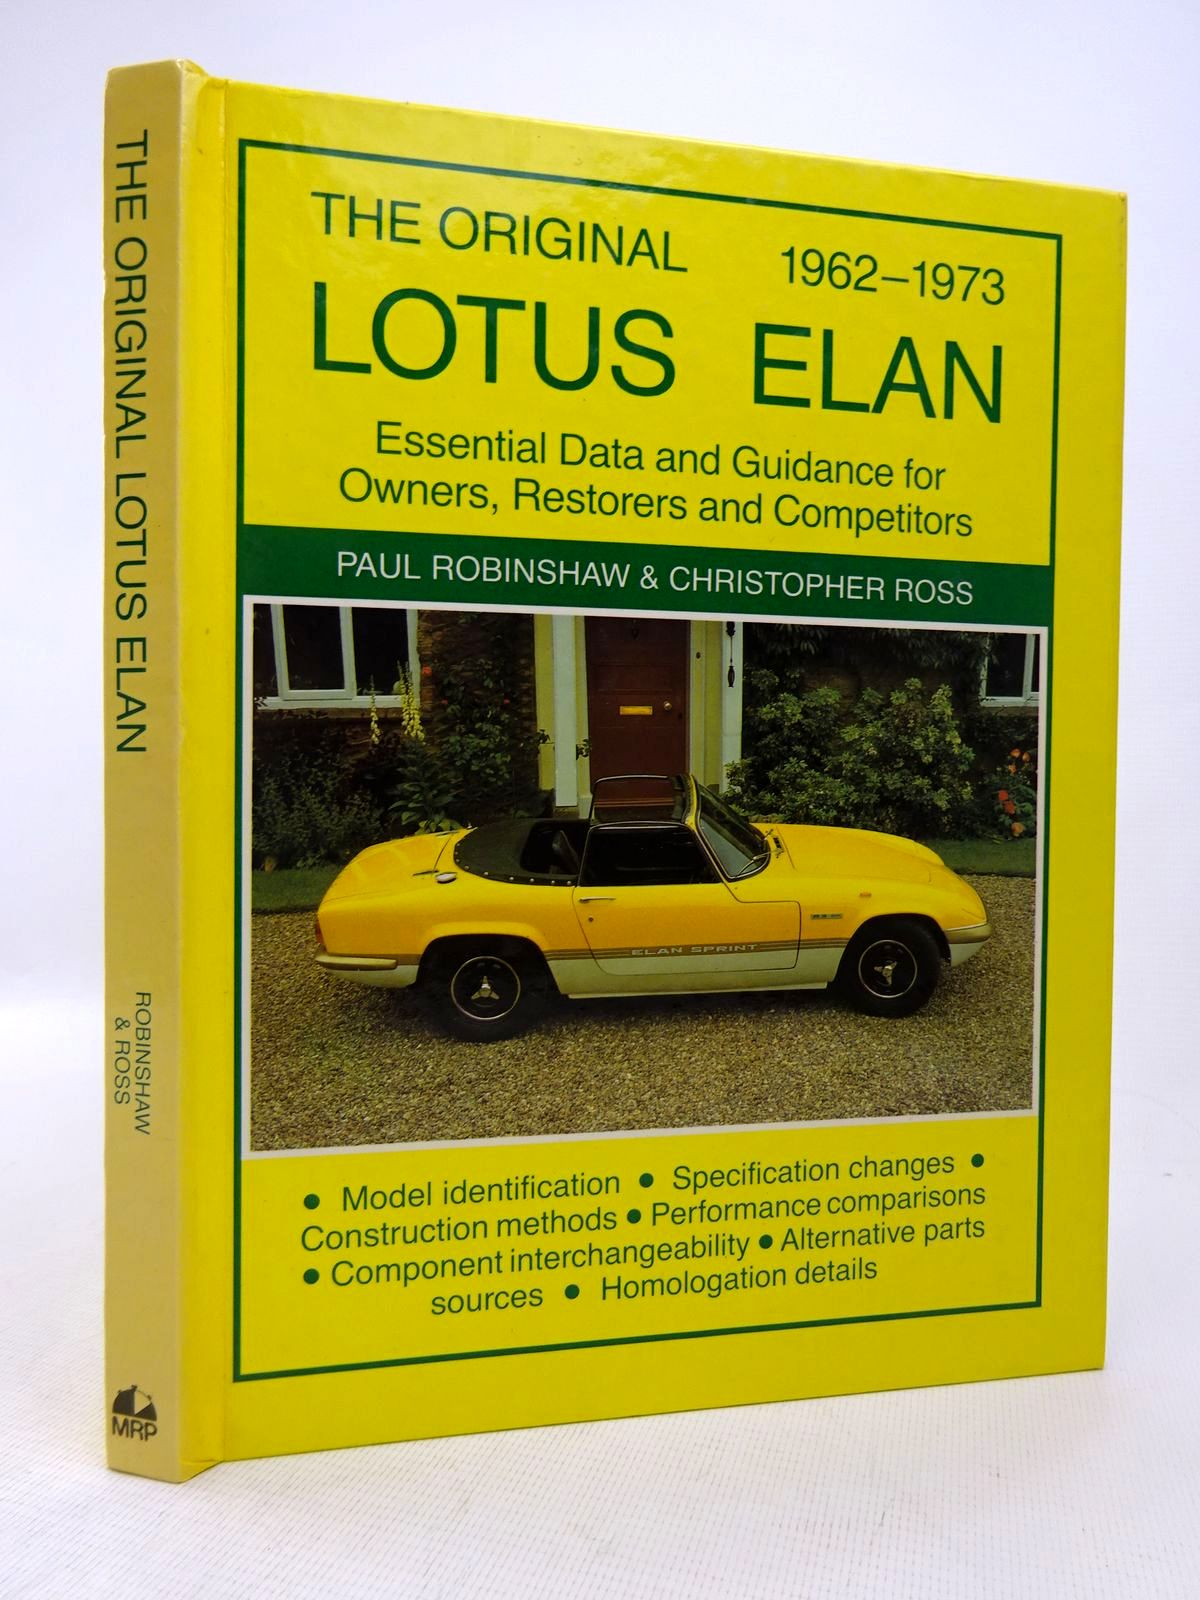 Photo of THE ORIGINAL LOTUS ELAN written by Robinshaw, Paul Ross, Christopher published by MRP (STOCK CODE: 1816789)  for sale by Stella & Rose's Books